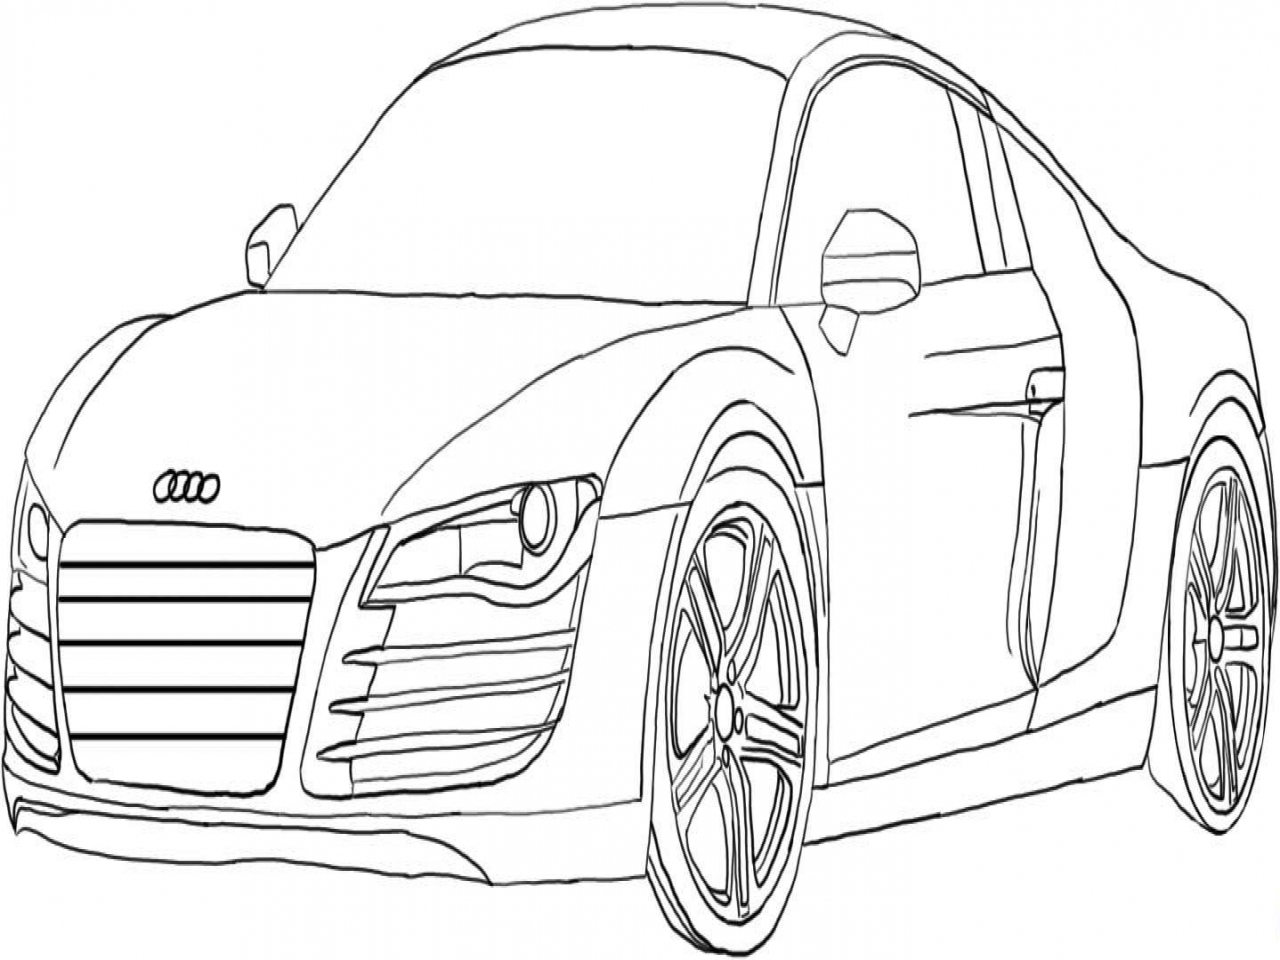 1280x960 Co2 Car Coloring Drawing Of Nice Audi For Kids Coluring Page